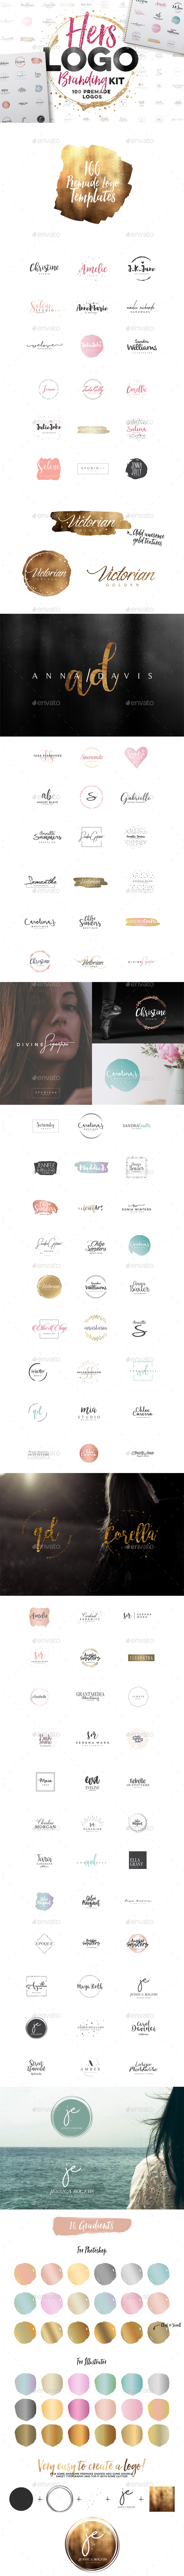 Hers Logo Branding Kit - Badges & Stickers Web Elements